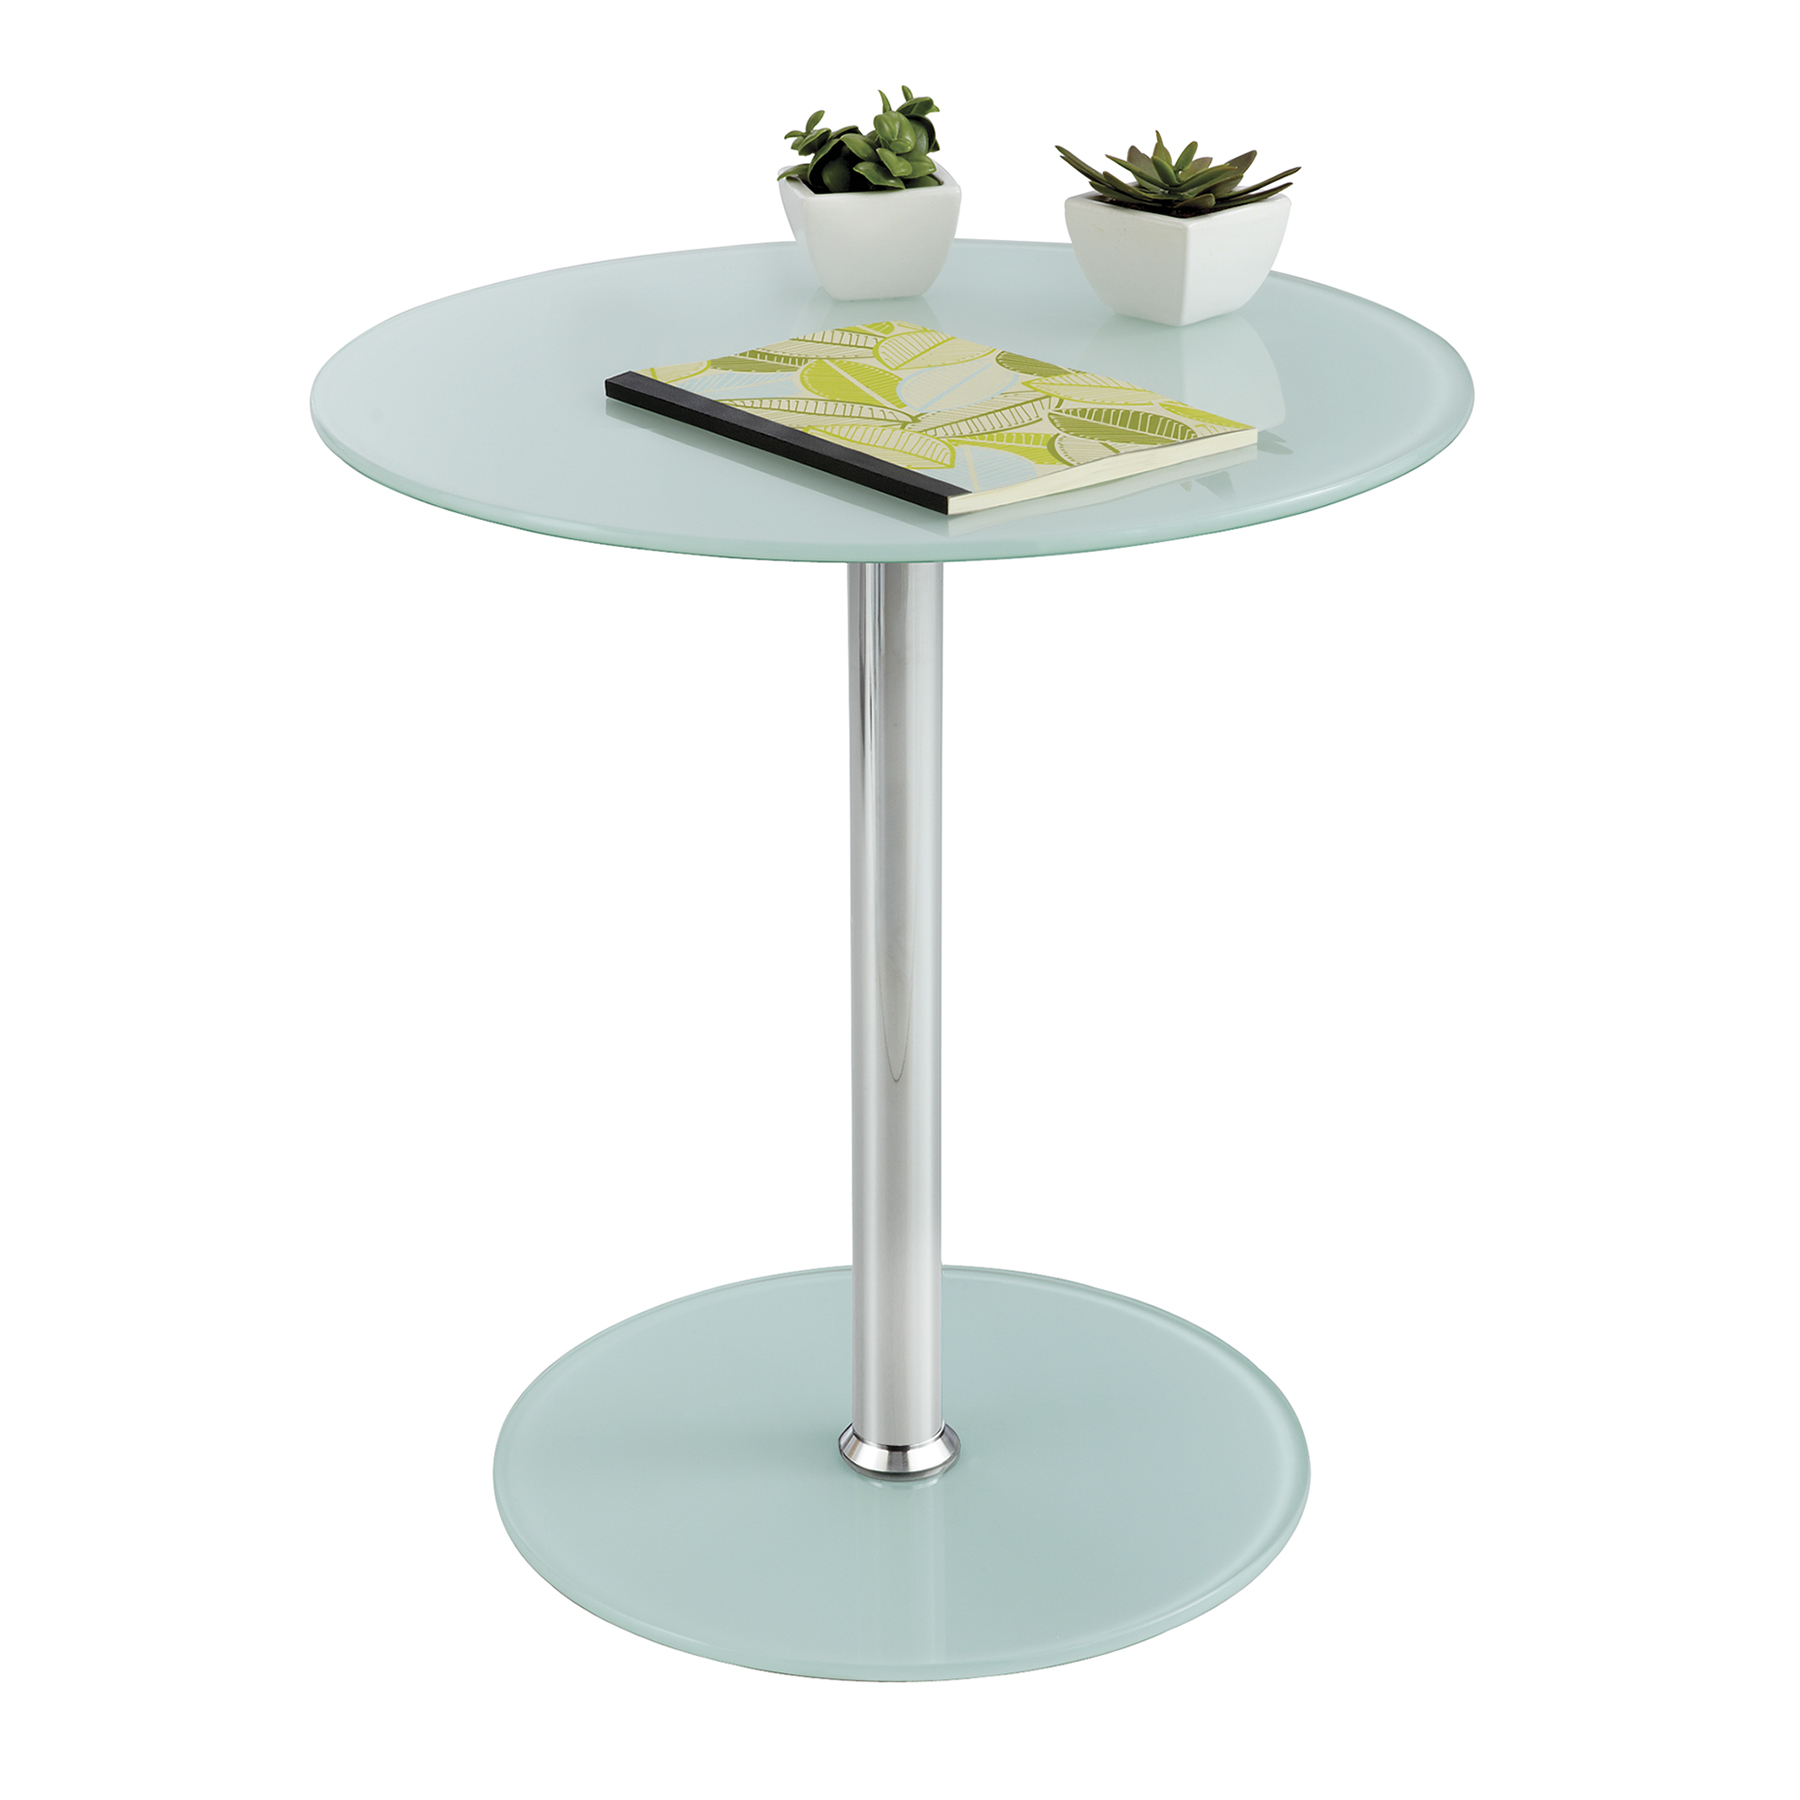 glass accent table safco products high end tables hairpin legs for less inexpensive dining sets round kitchen modern light wood comfy outdoor chair clamp lamp black patio pottery